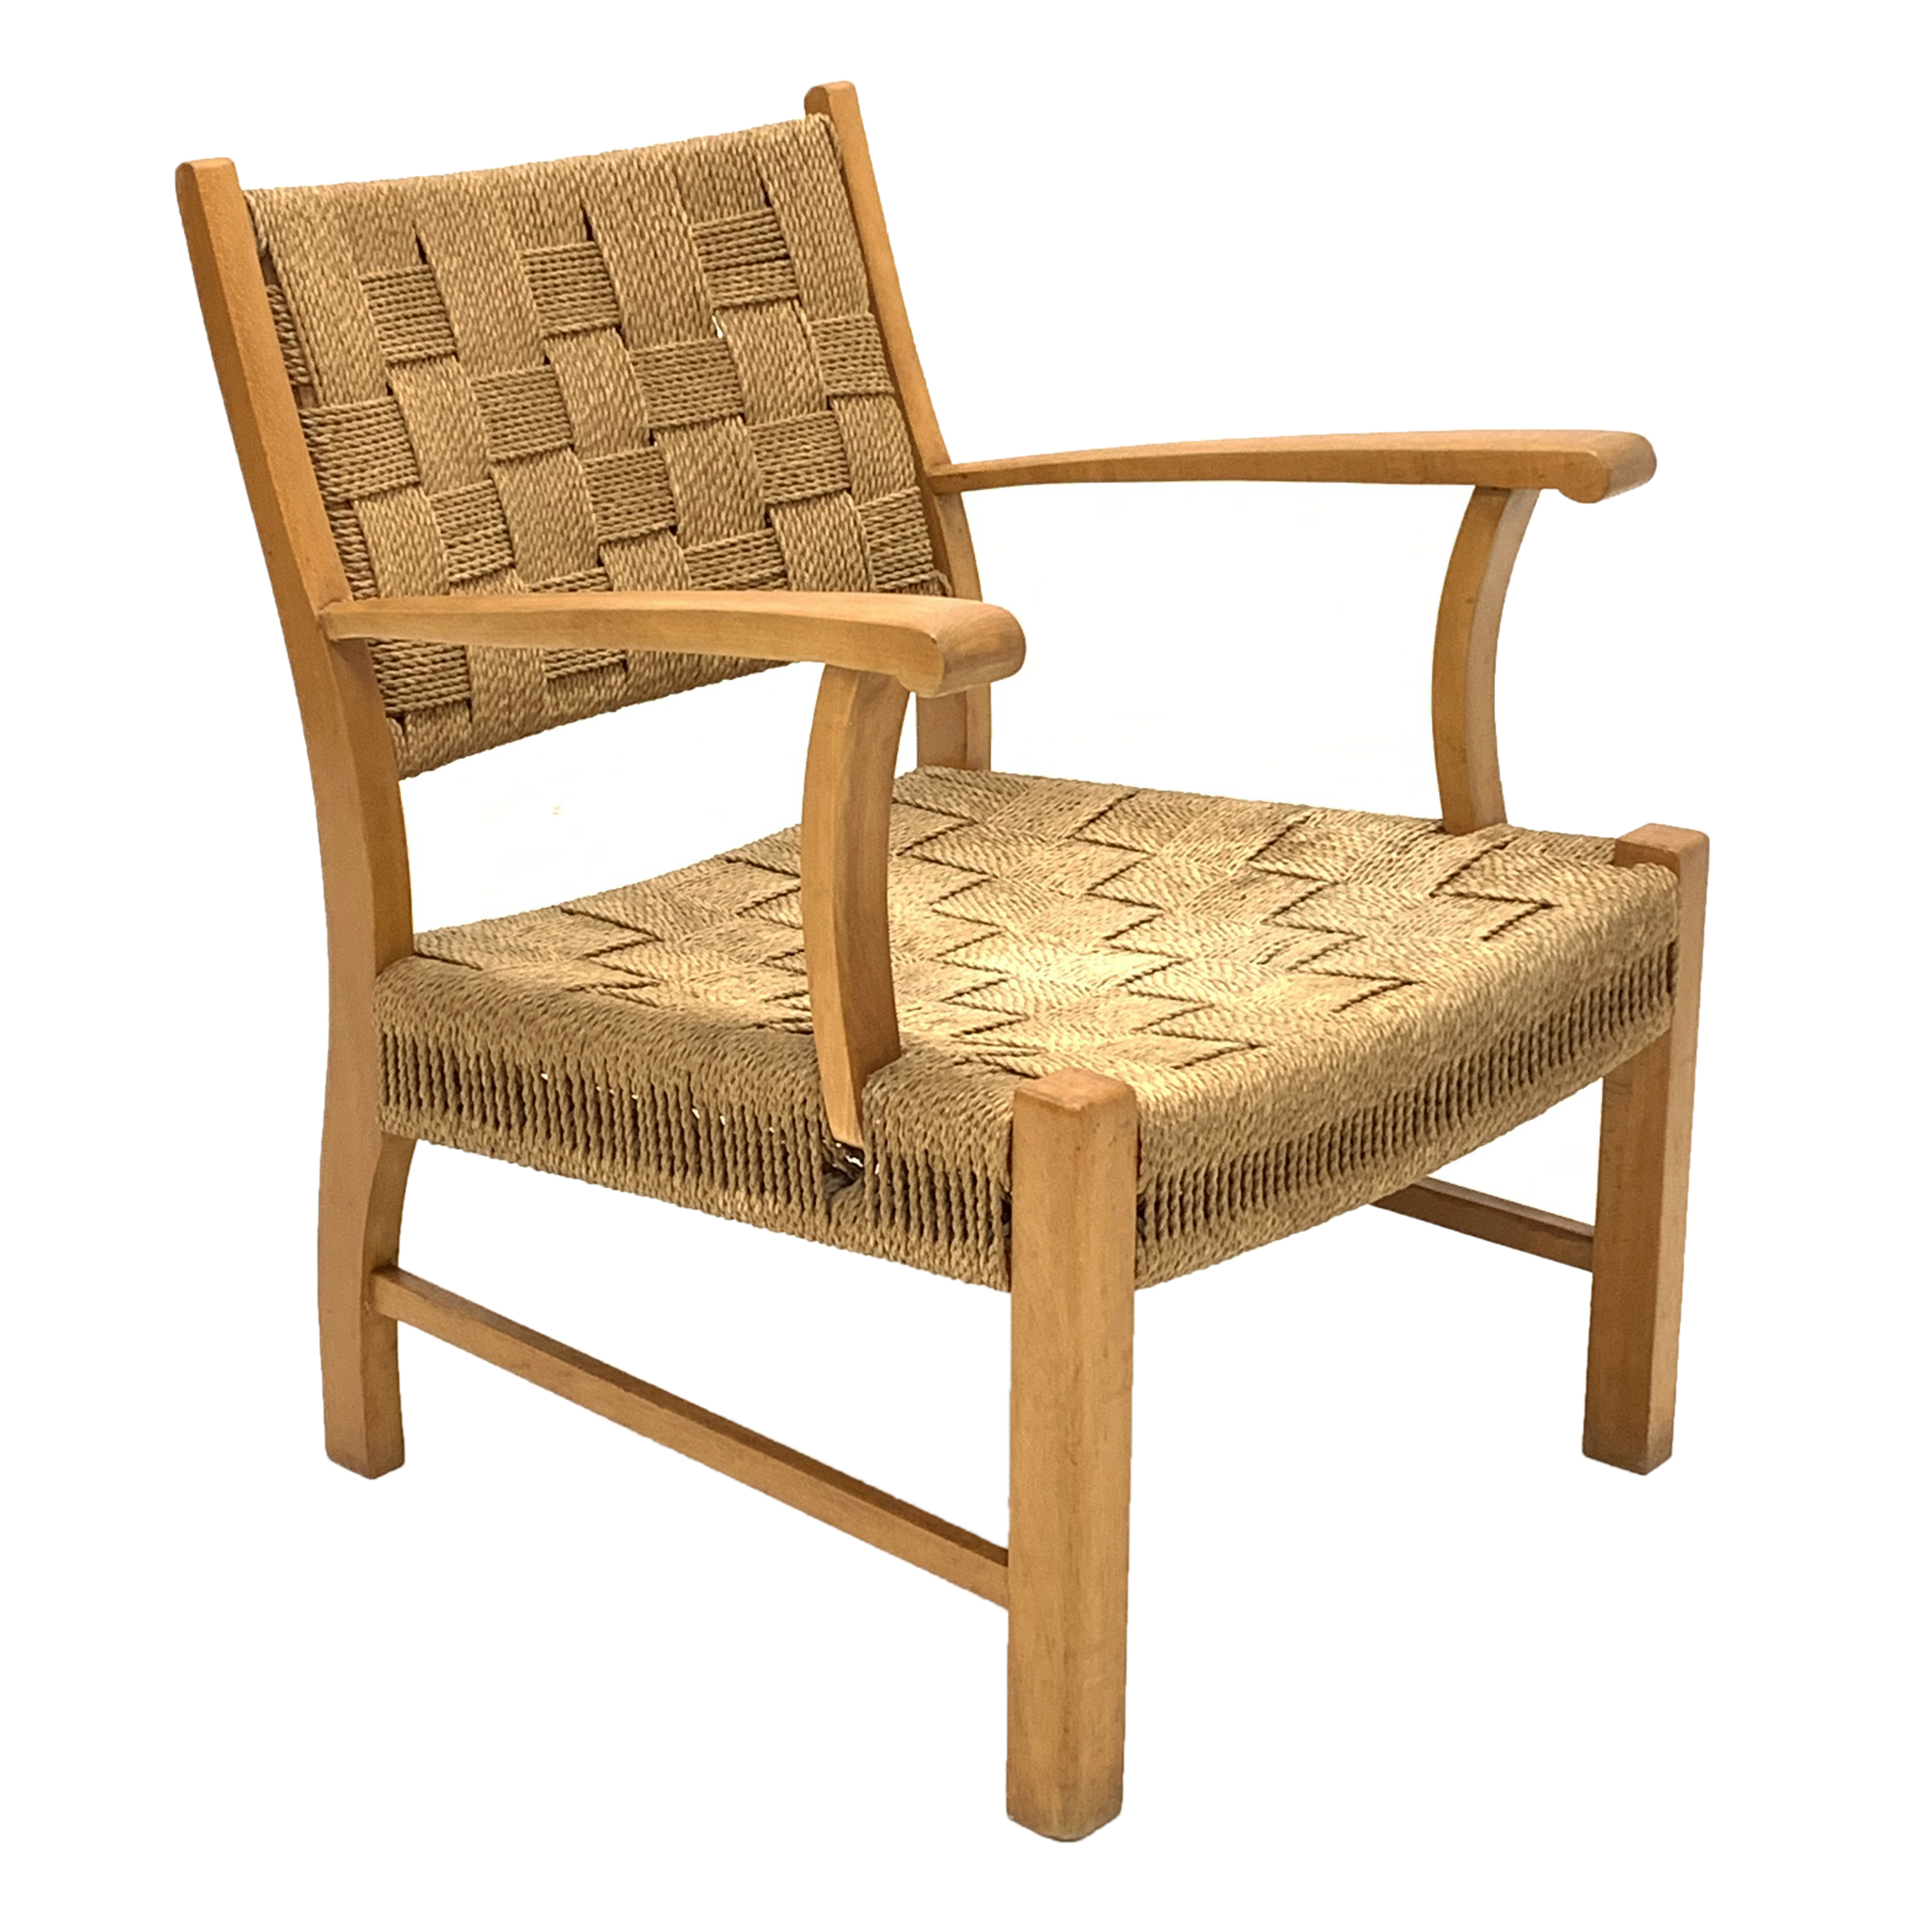 Attributed to Frits Schlegel - Danish beech and cord lounge chair, circa. 1940s, W60cm